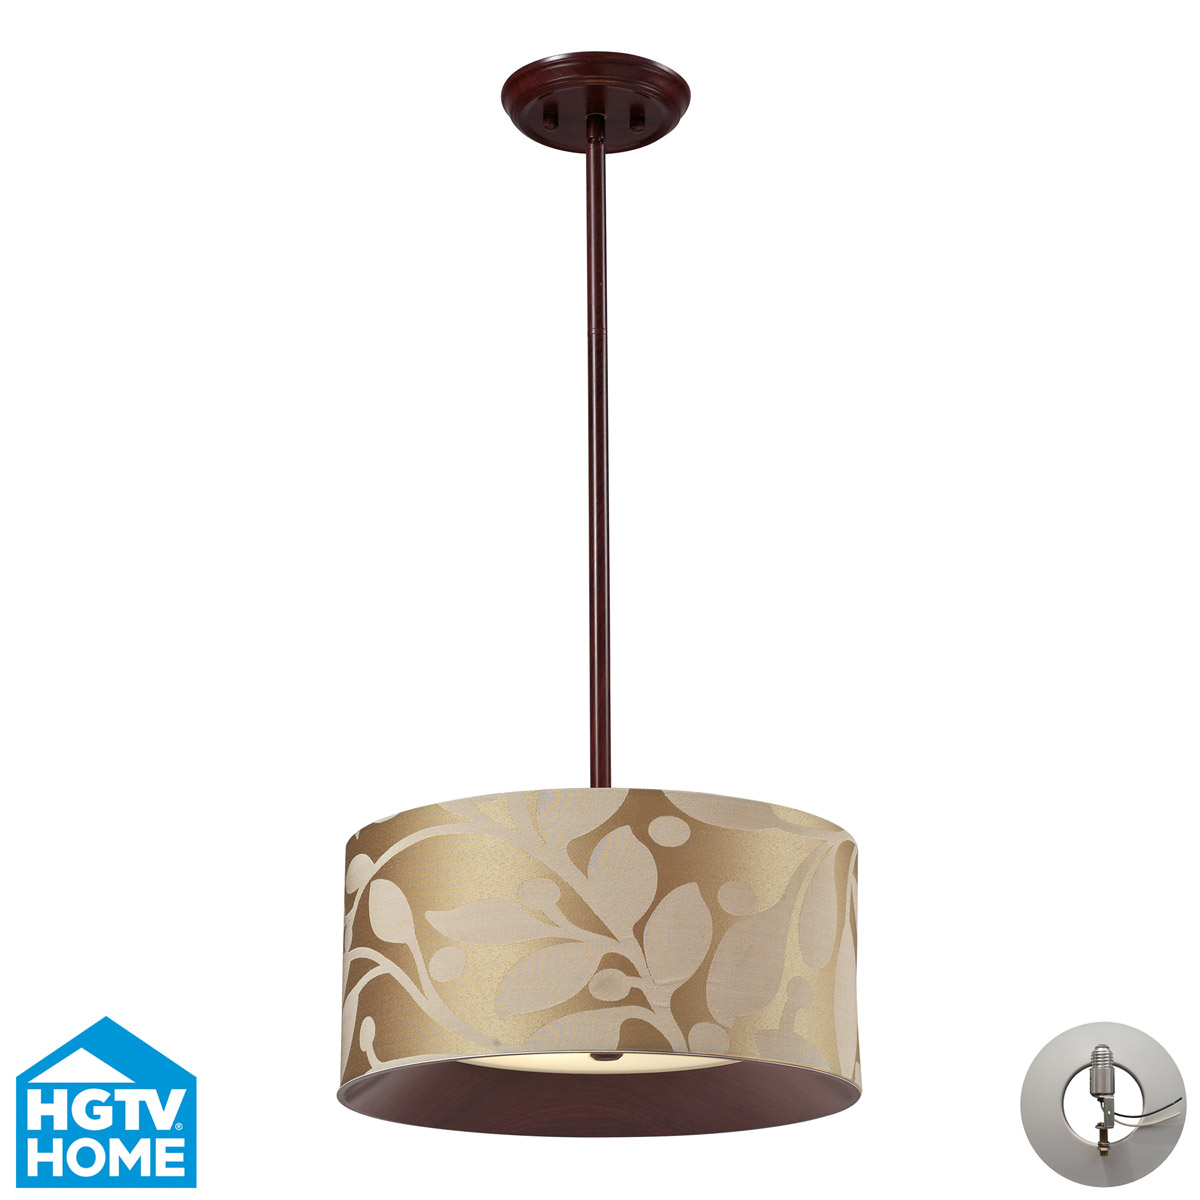 Elk Lighting Nathan 3-Light Drum Pendant In Dark Walnut with Recessed Conversion Kit